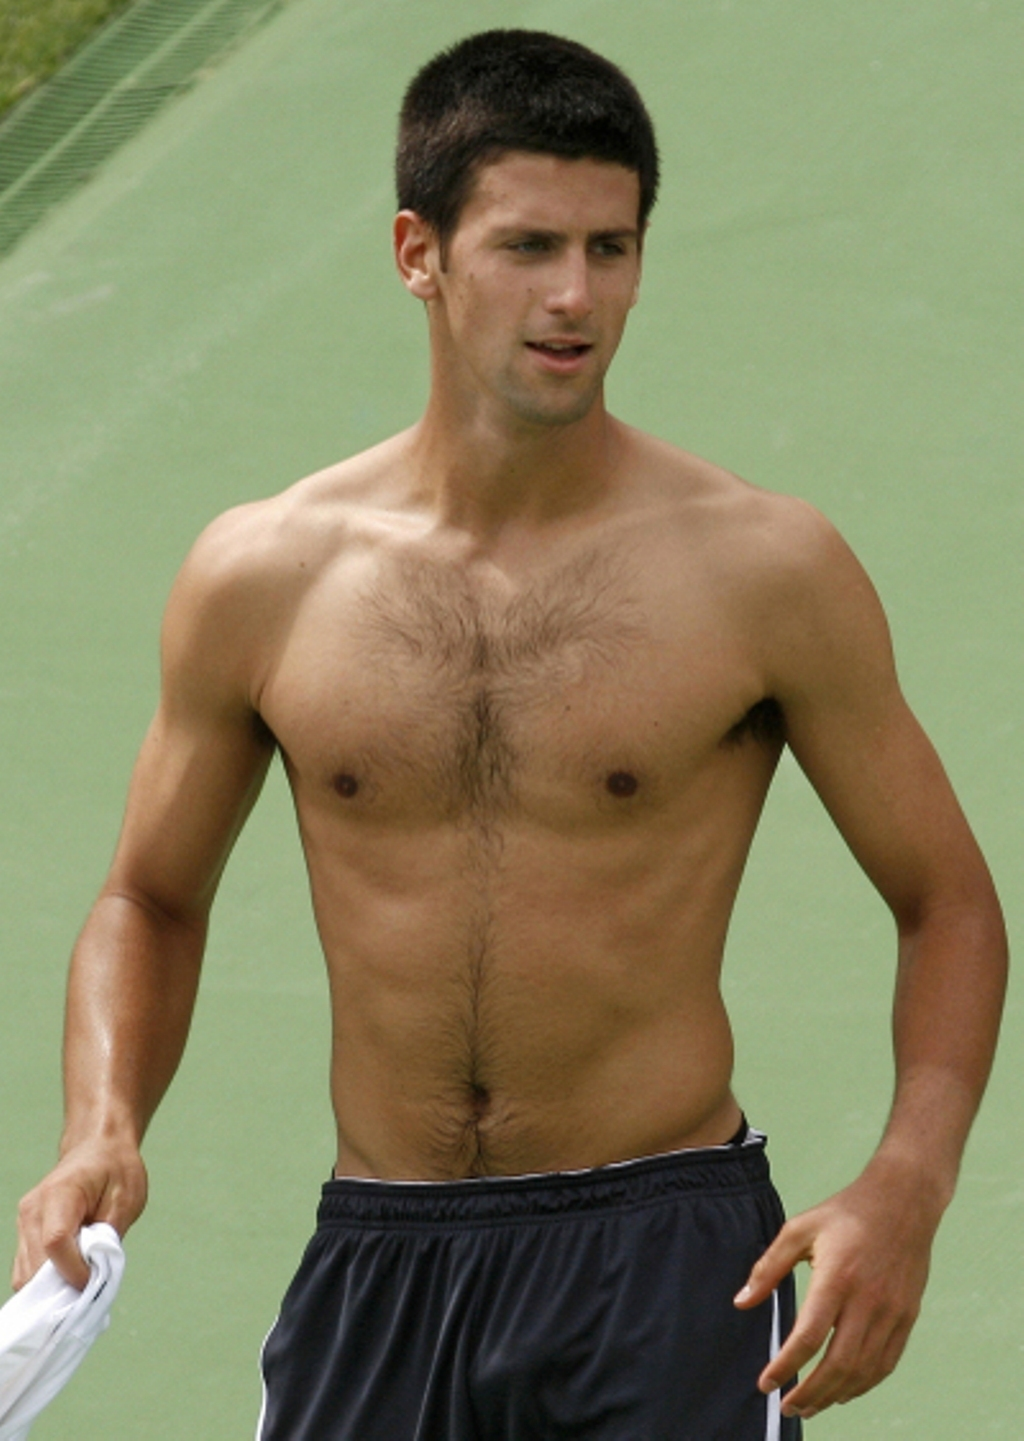 Bulge Shirtless Novak Djokovic Photo 15616945 Fanpop